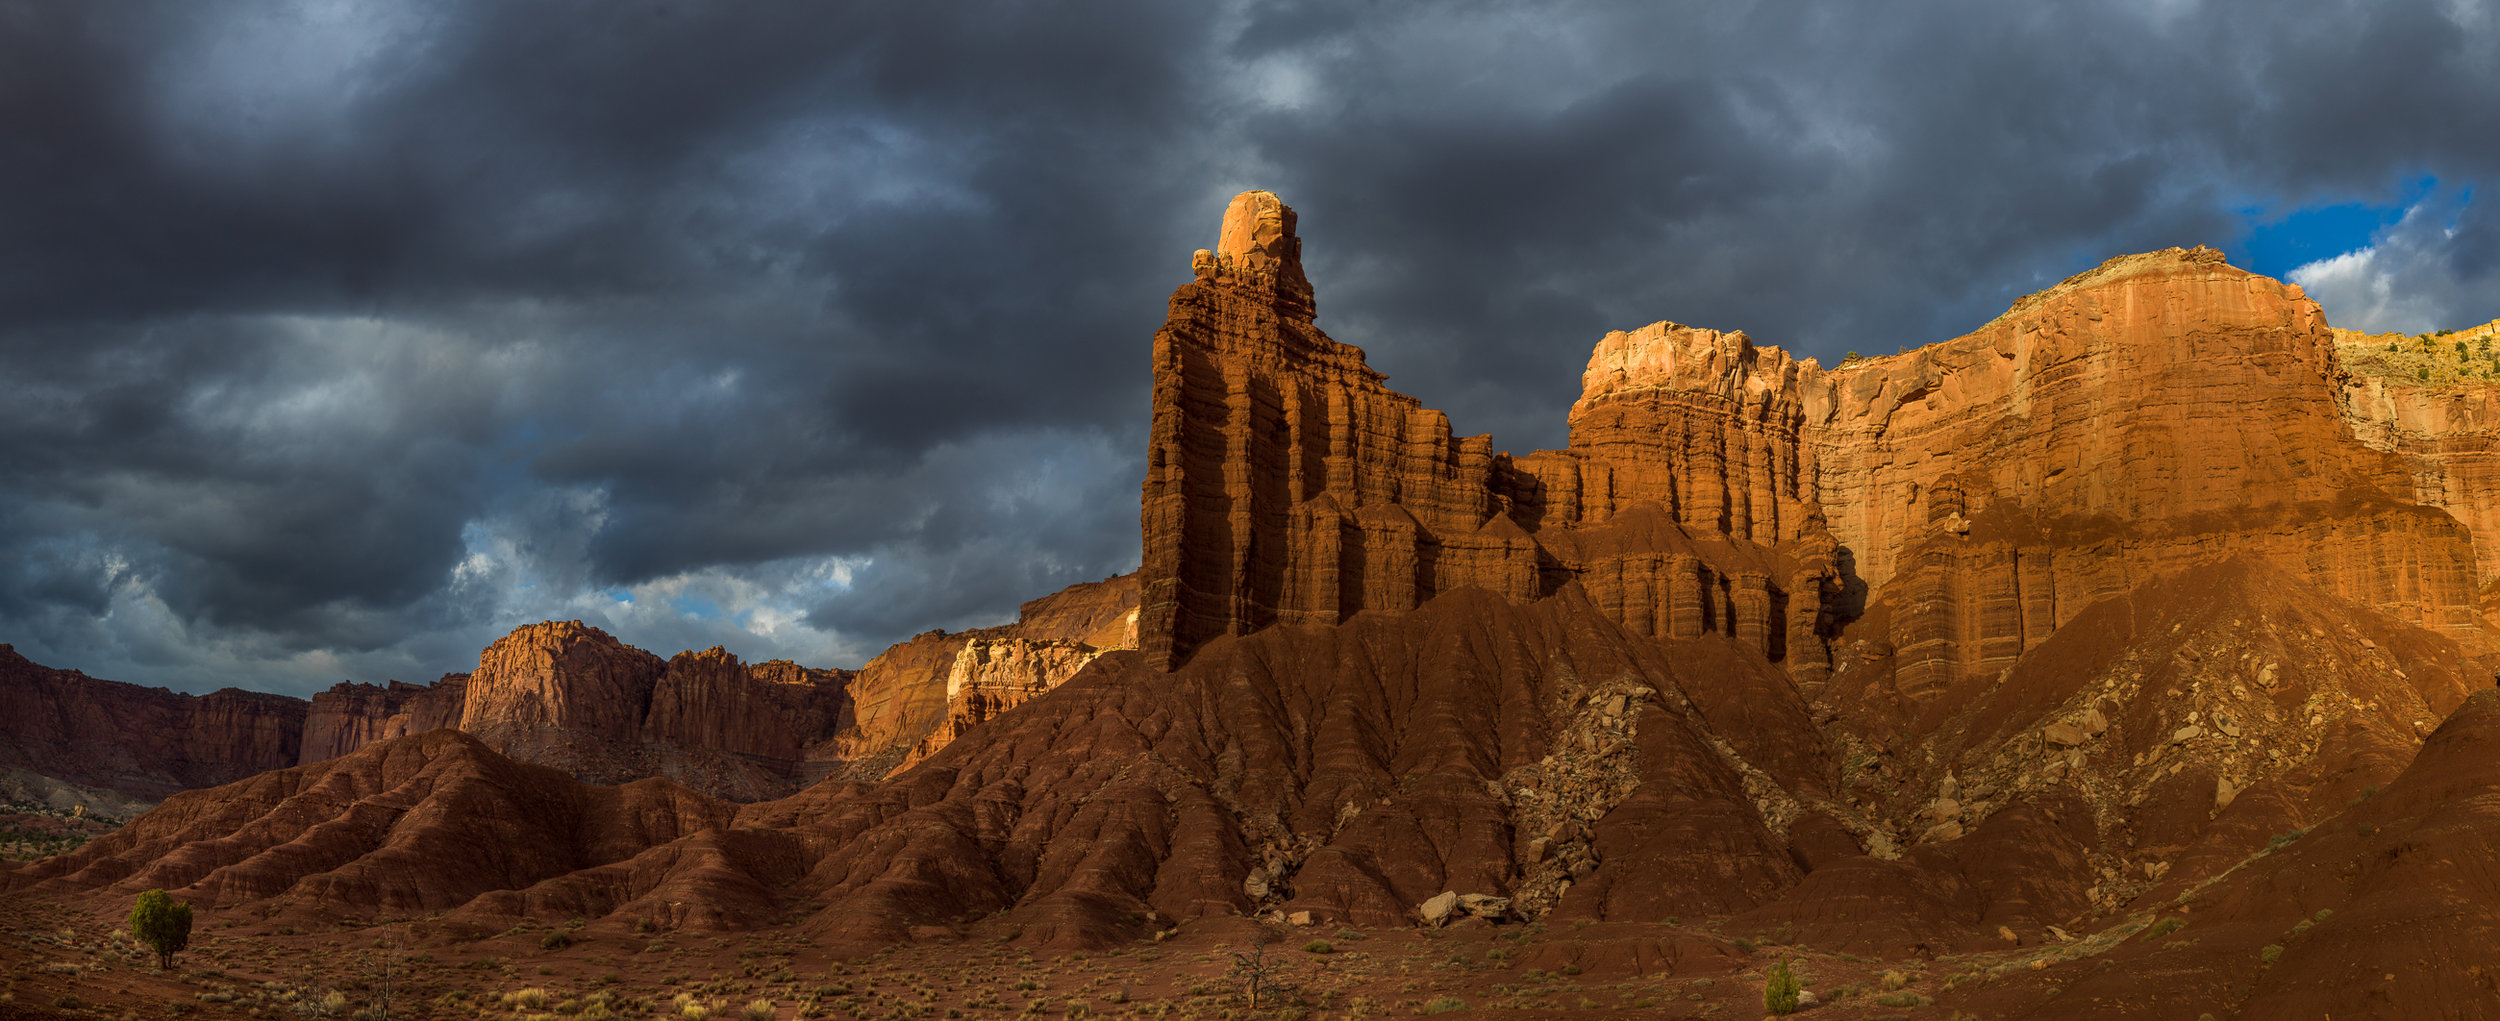 photo_workshop_utah_night-skies-5.jpg